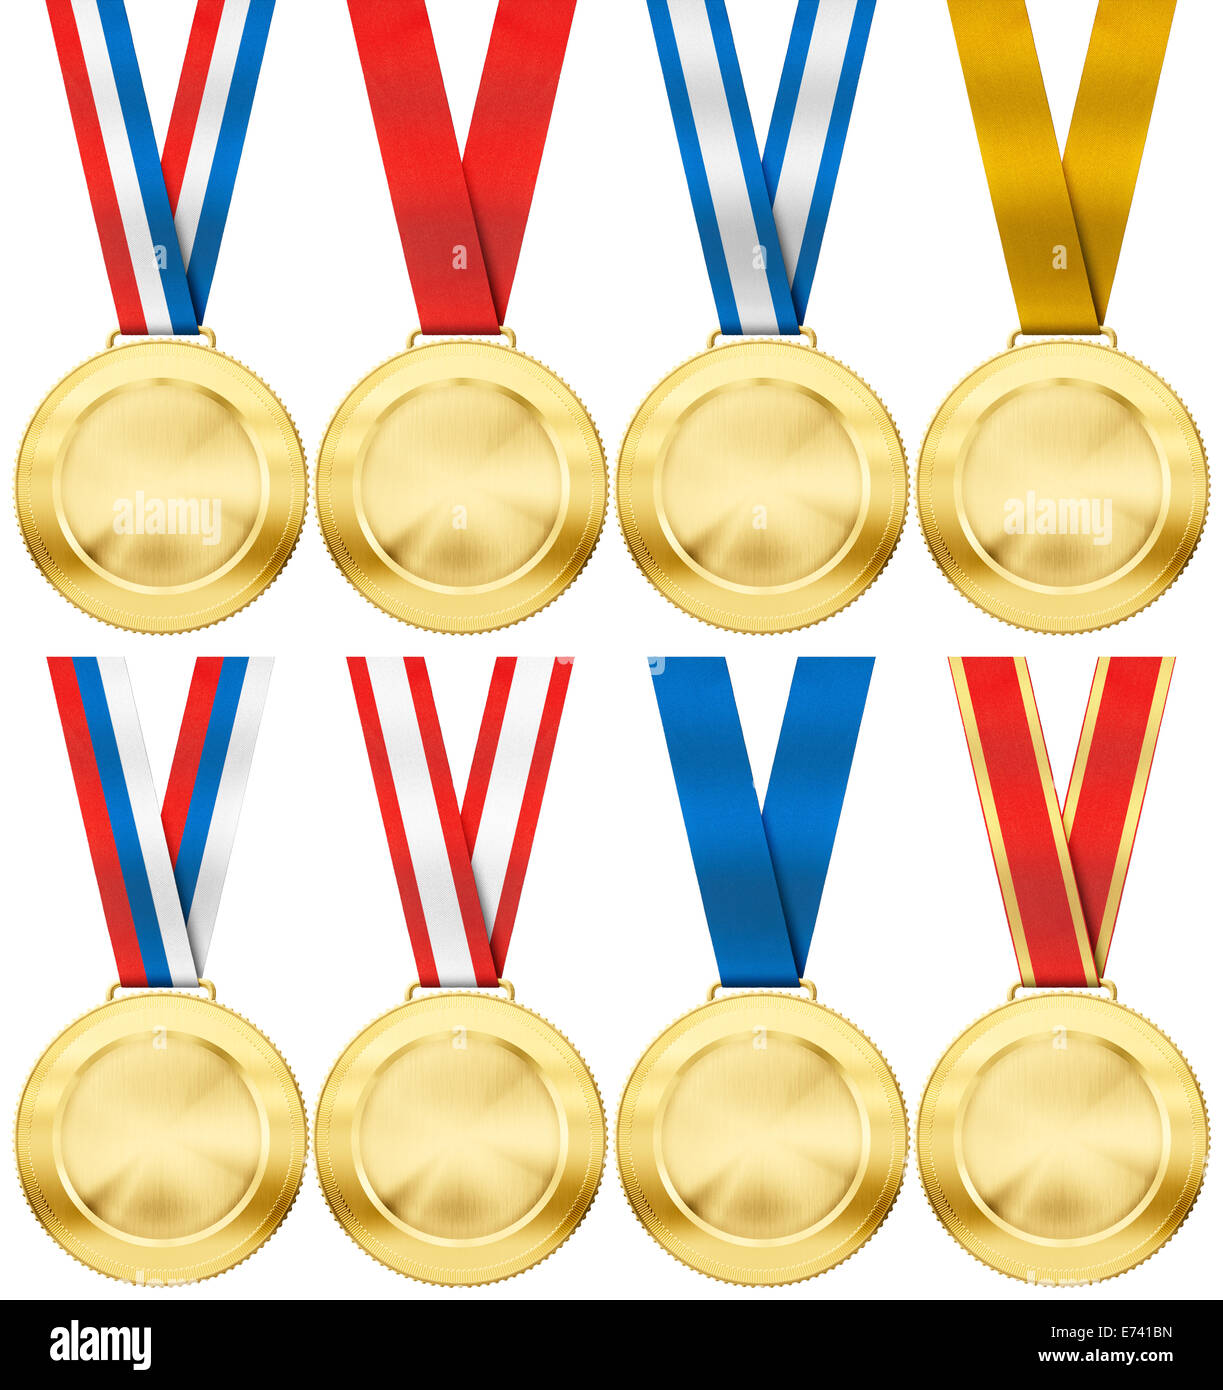 gold medal set with various photo realistic ribbon type isolated on white - Stock Image